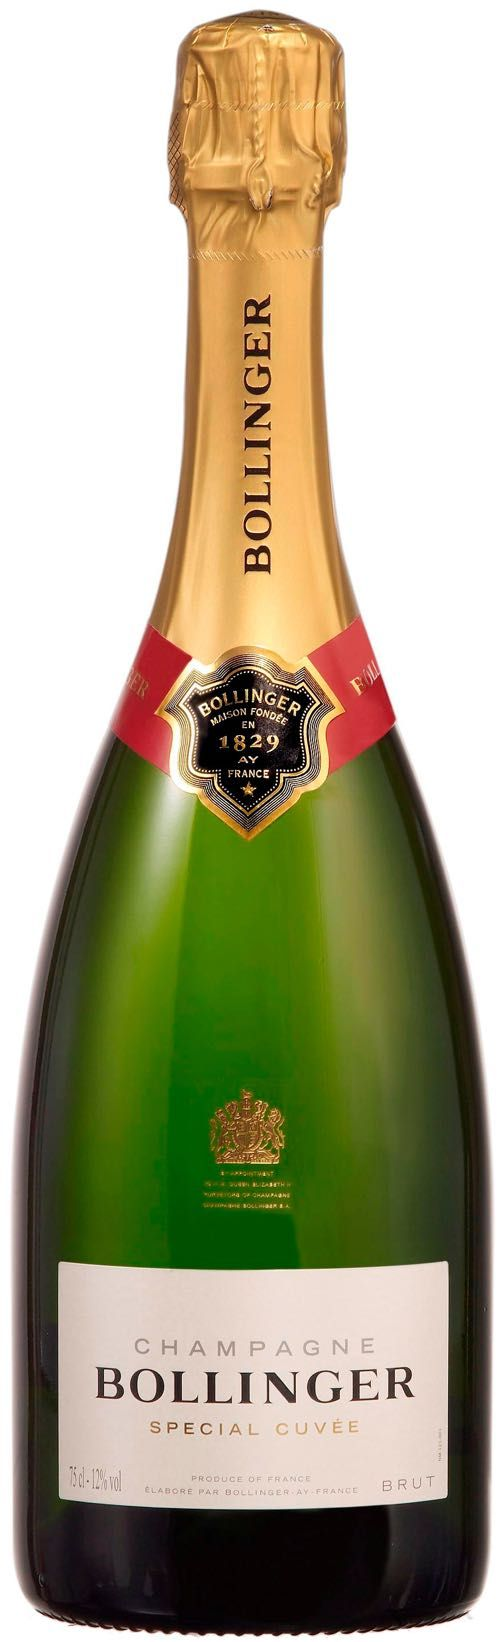 Bollinger Special Cuvee Brut Champagne - Free Stopper